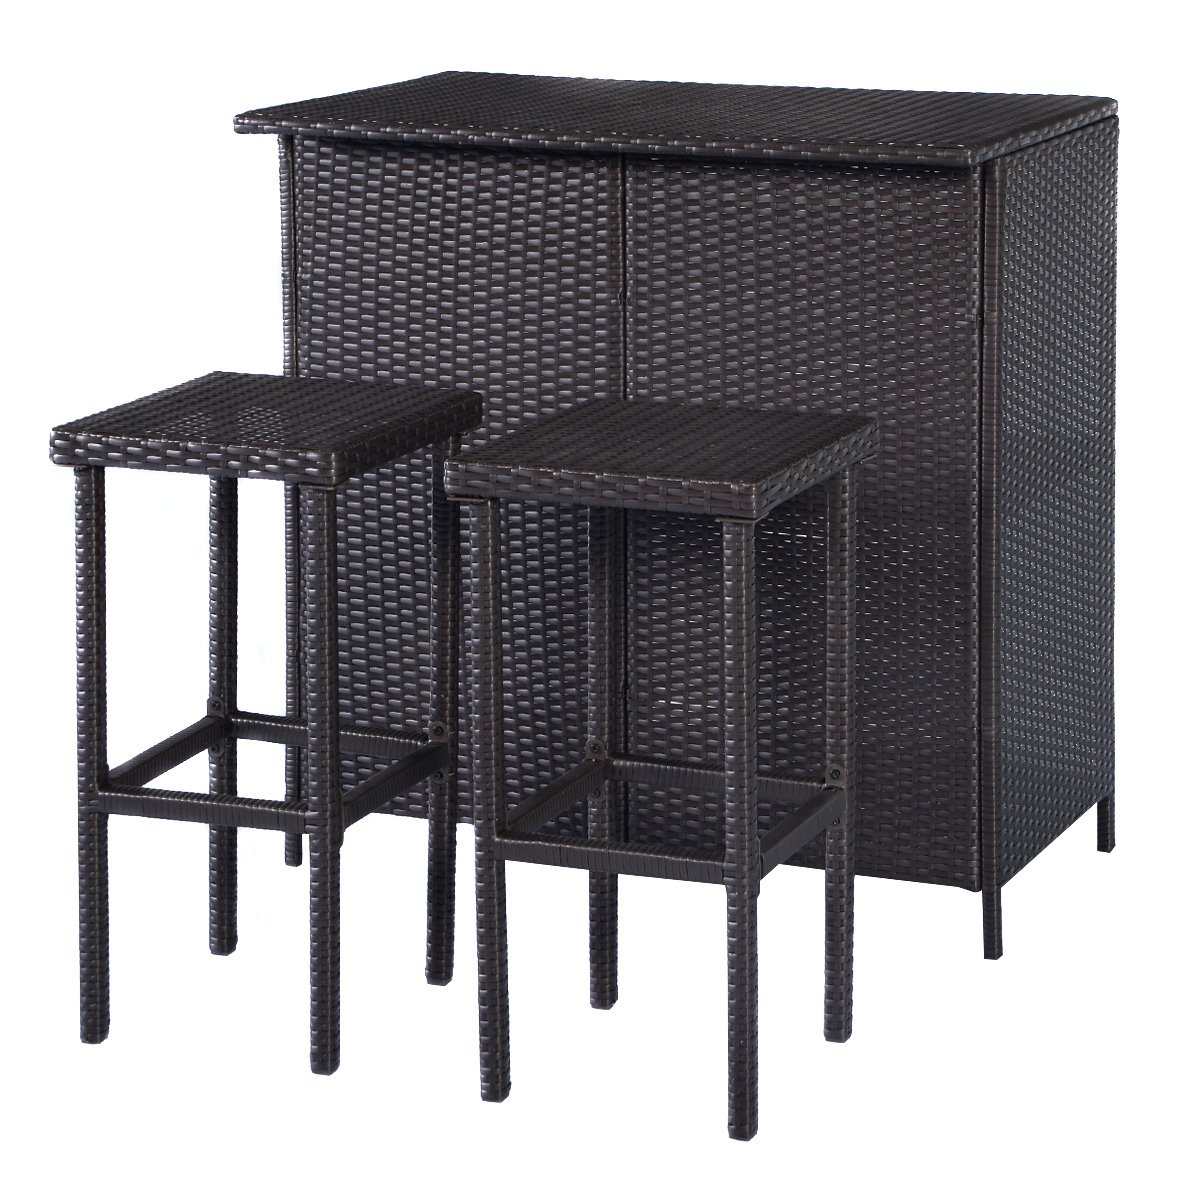 Get Quotations Tangkula 3 Piece Patio Bar Set Rattan Wicker Stools Table For Lawn Pool Backyard